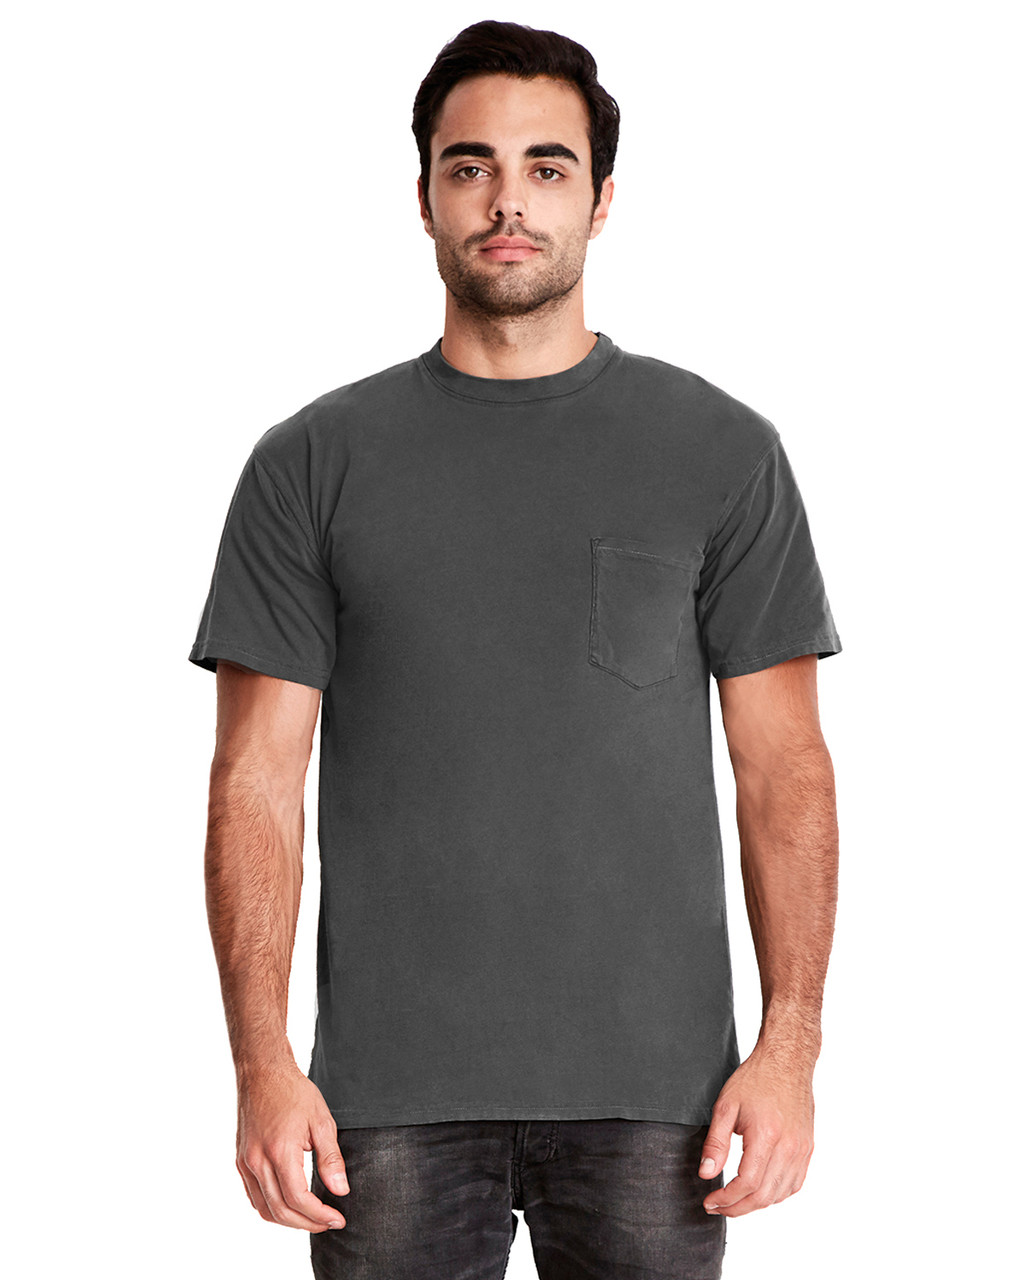 Shadow - 7415 Next Level Adult Inspired Dye Crew T-Shirt with Pocket | Blankclothing.ca